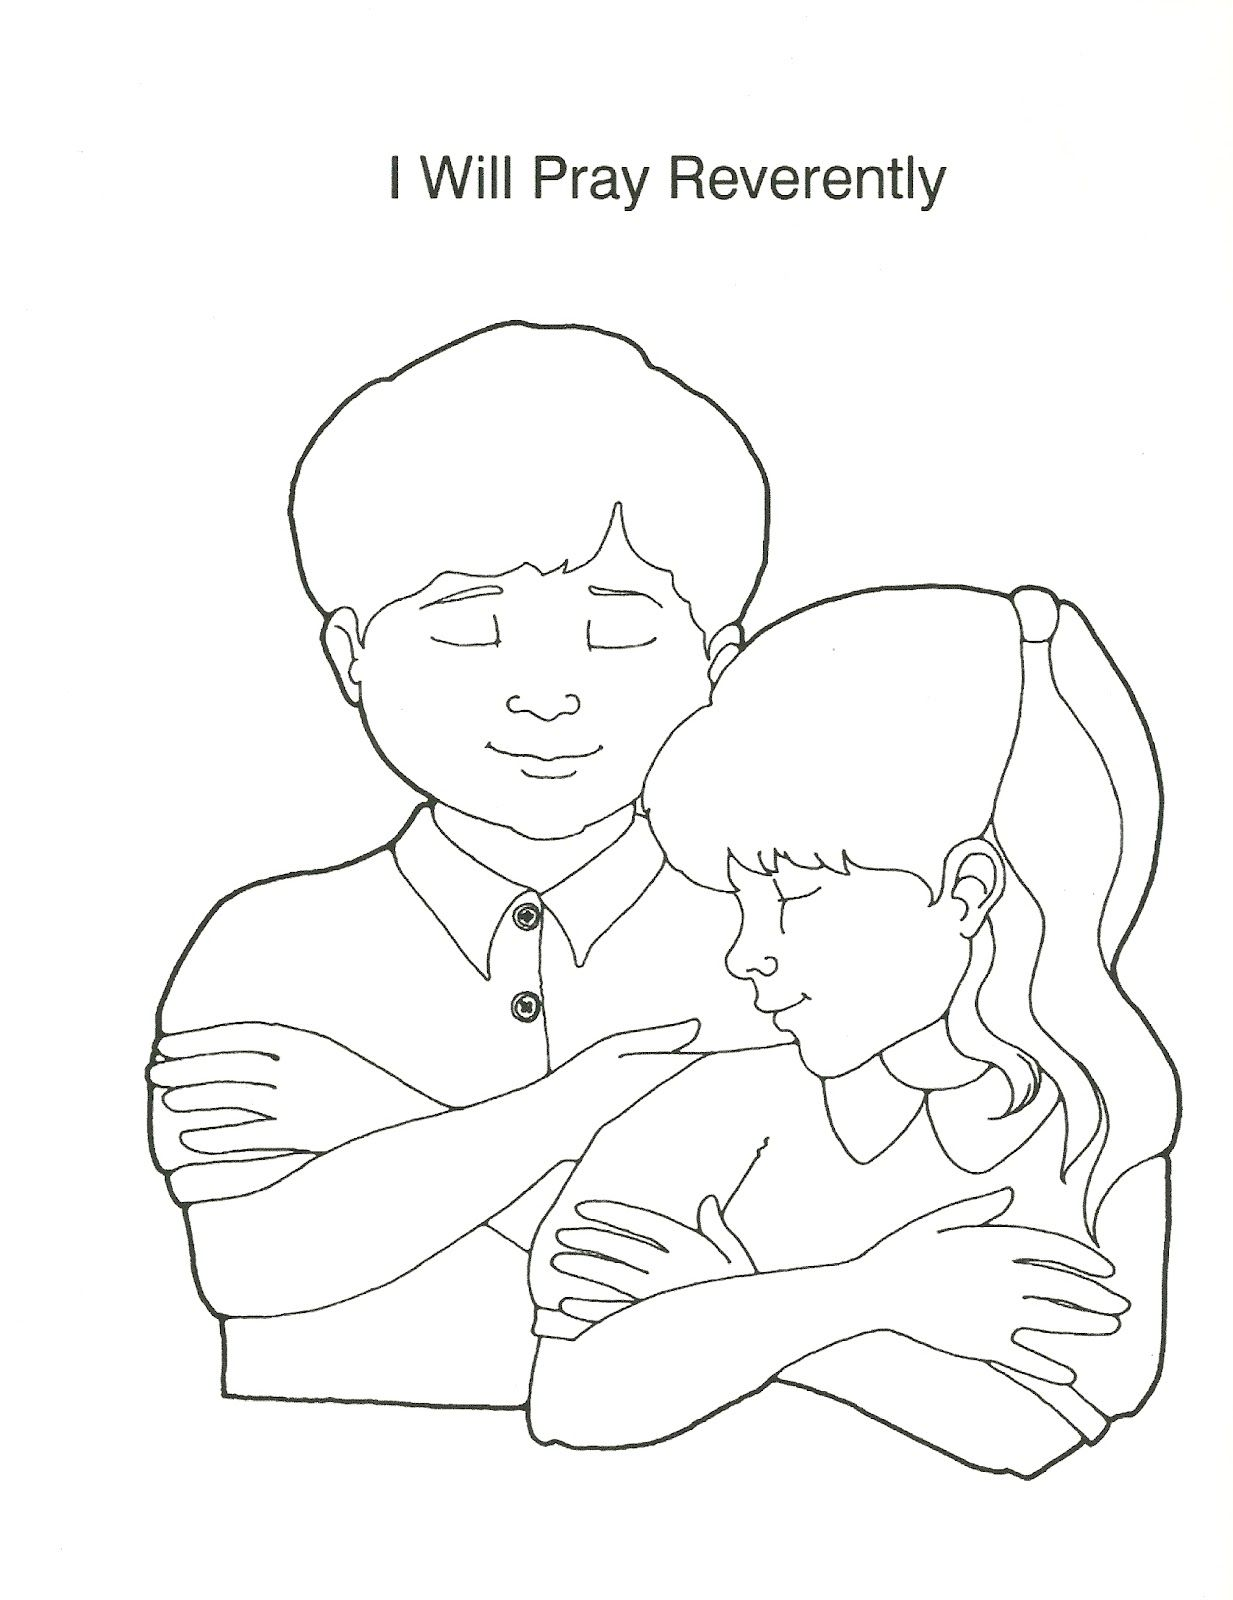 Lovely Lds Prayer Coloring Page 10 Primary Manual Lesson I